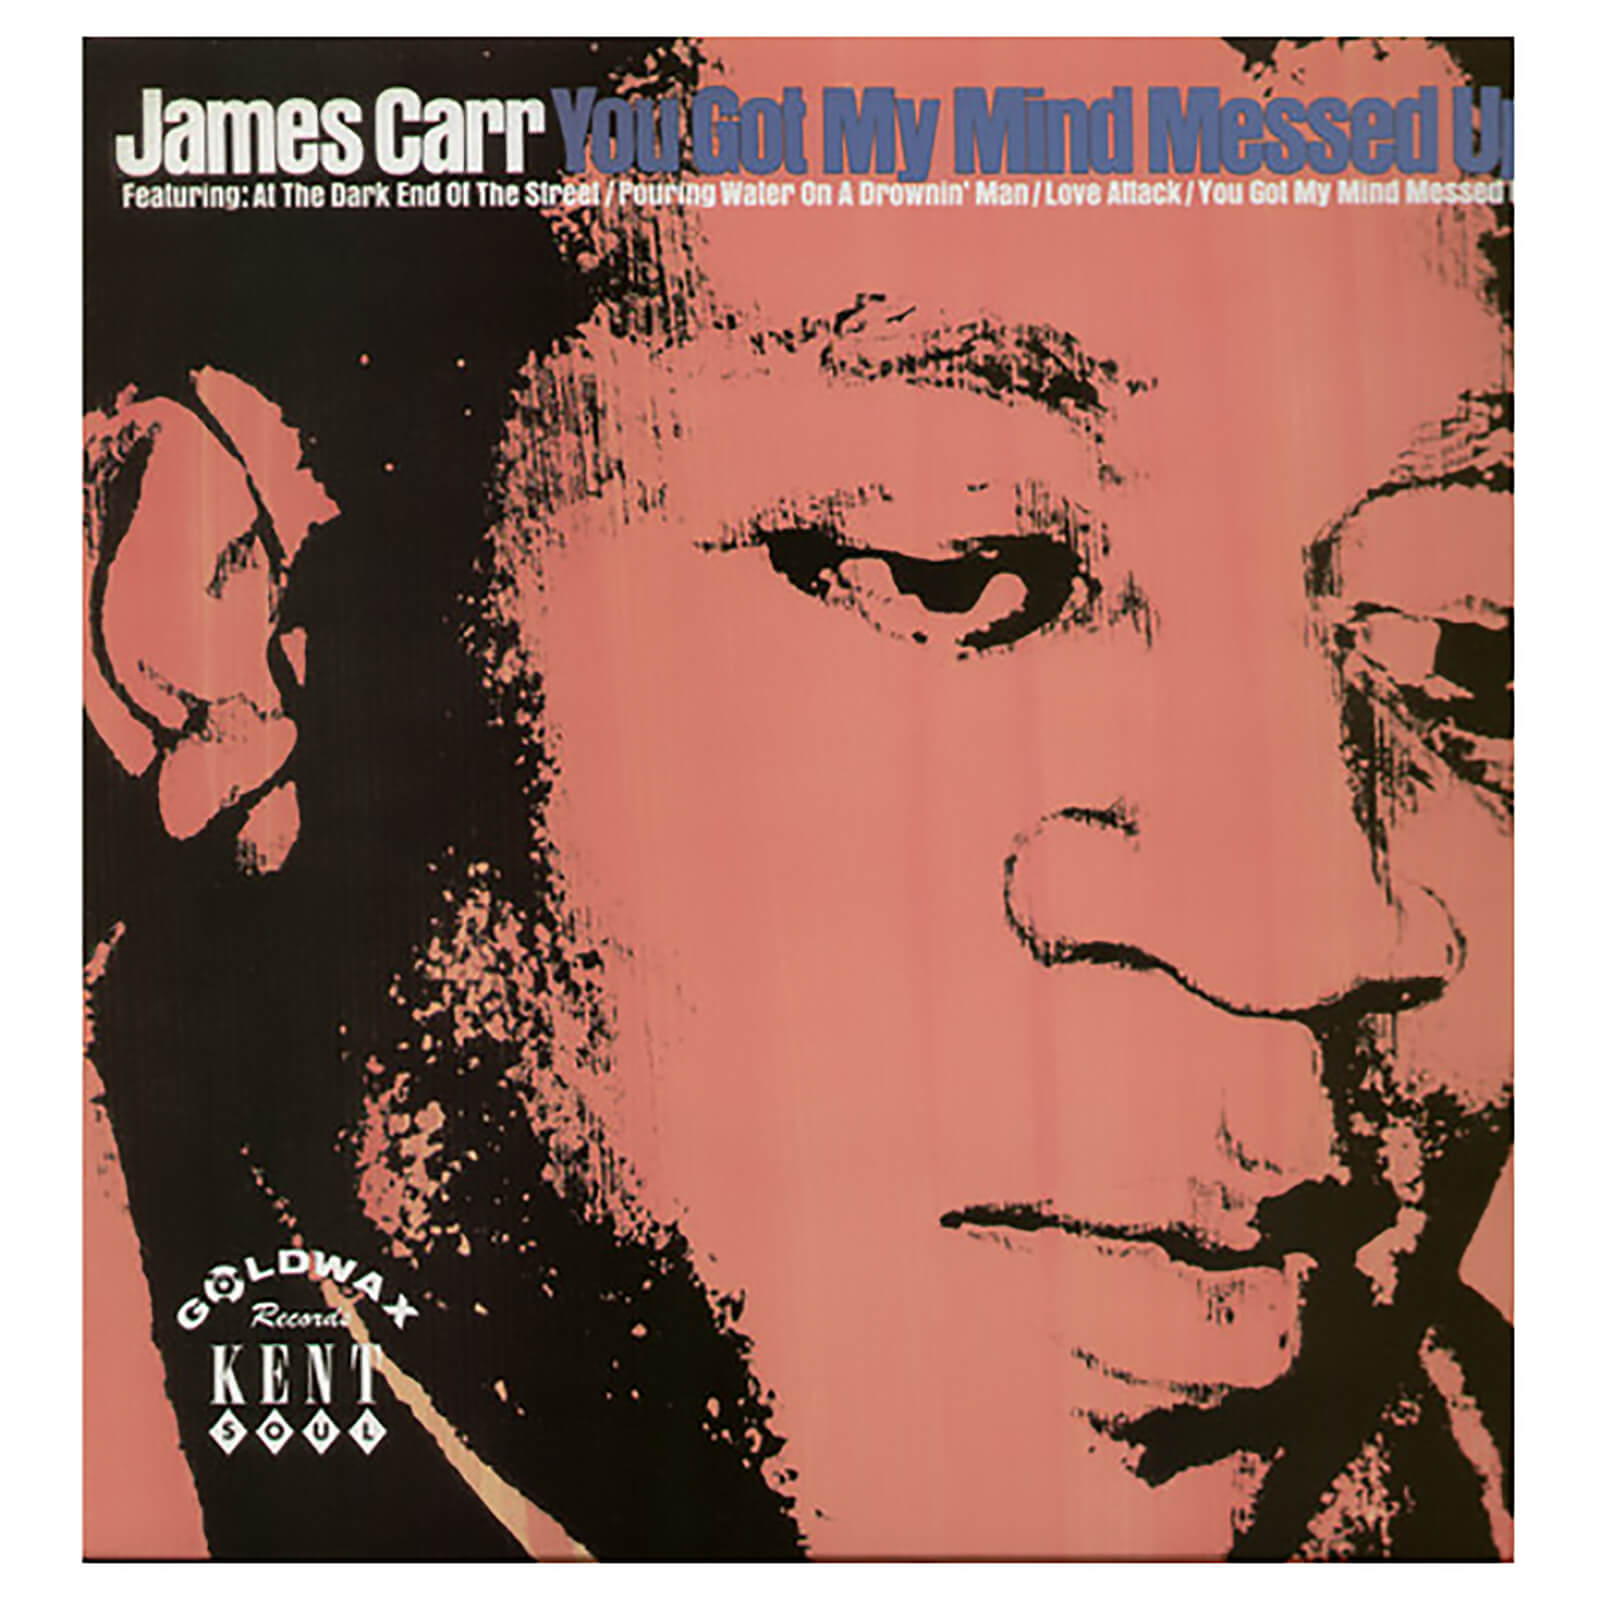 James Carr - You Got My Mind Messed Up - Vinyl